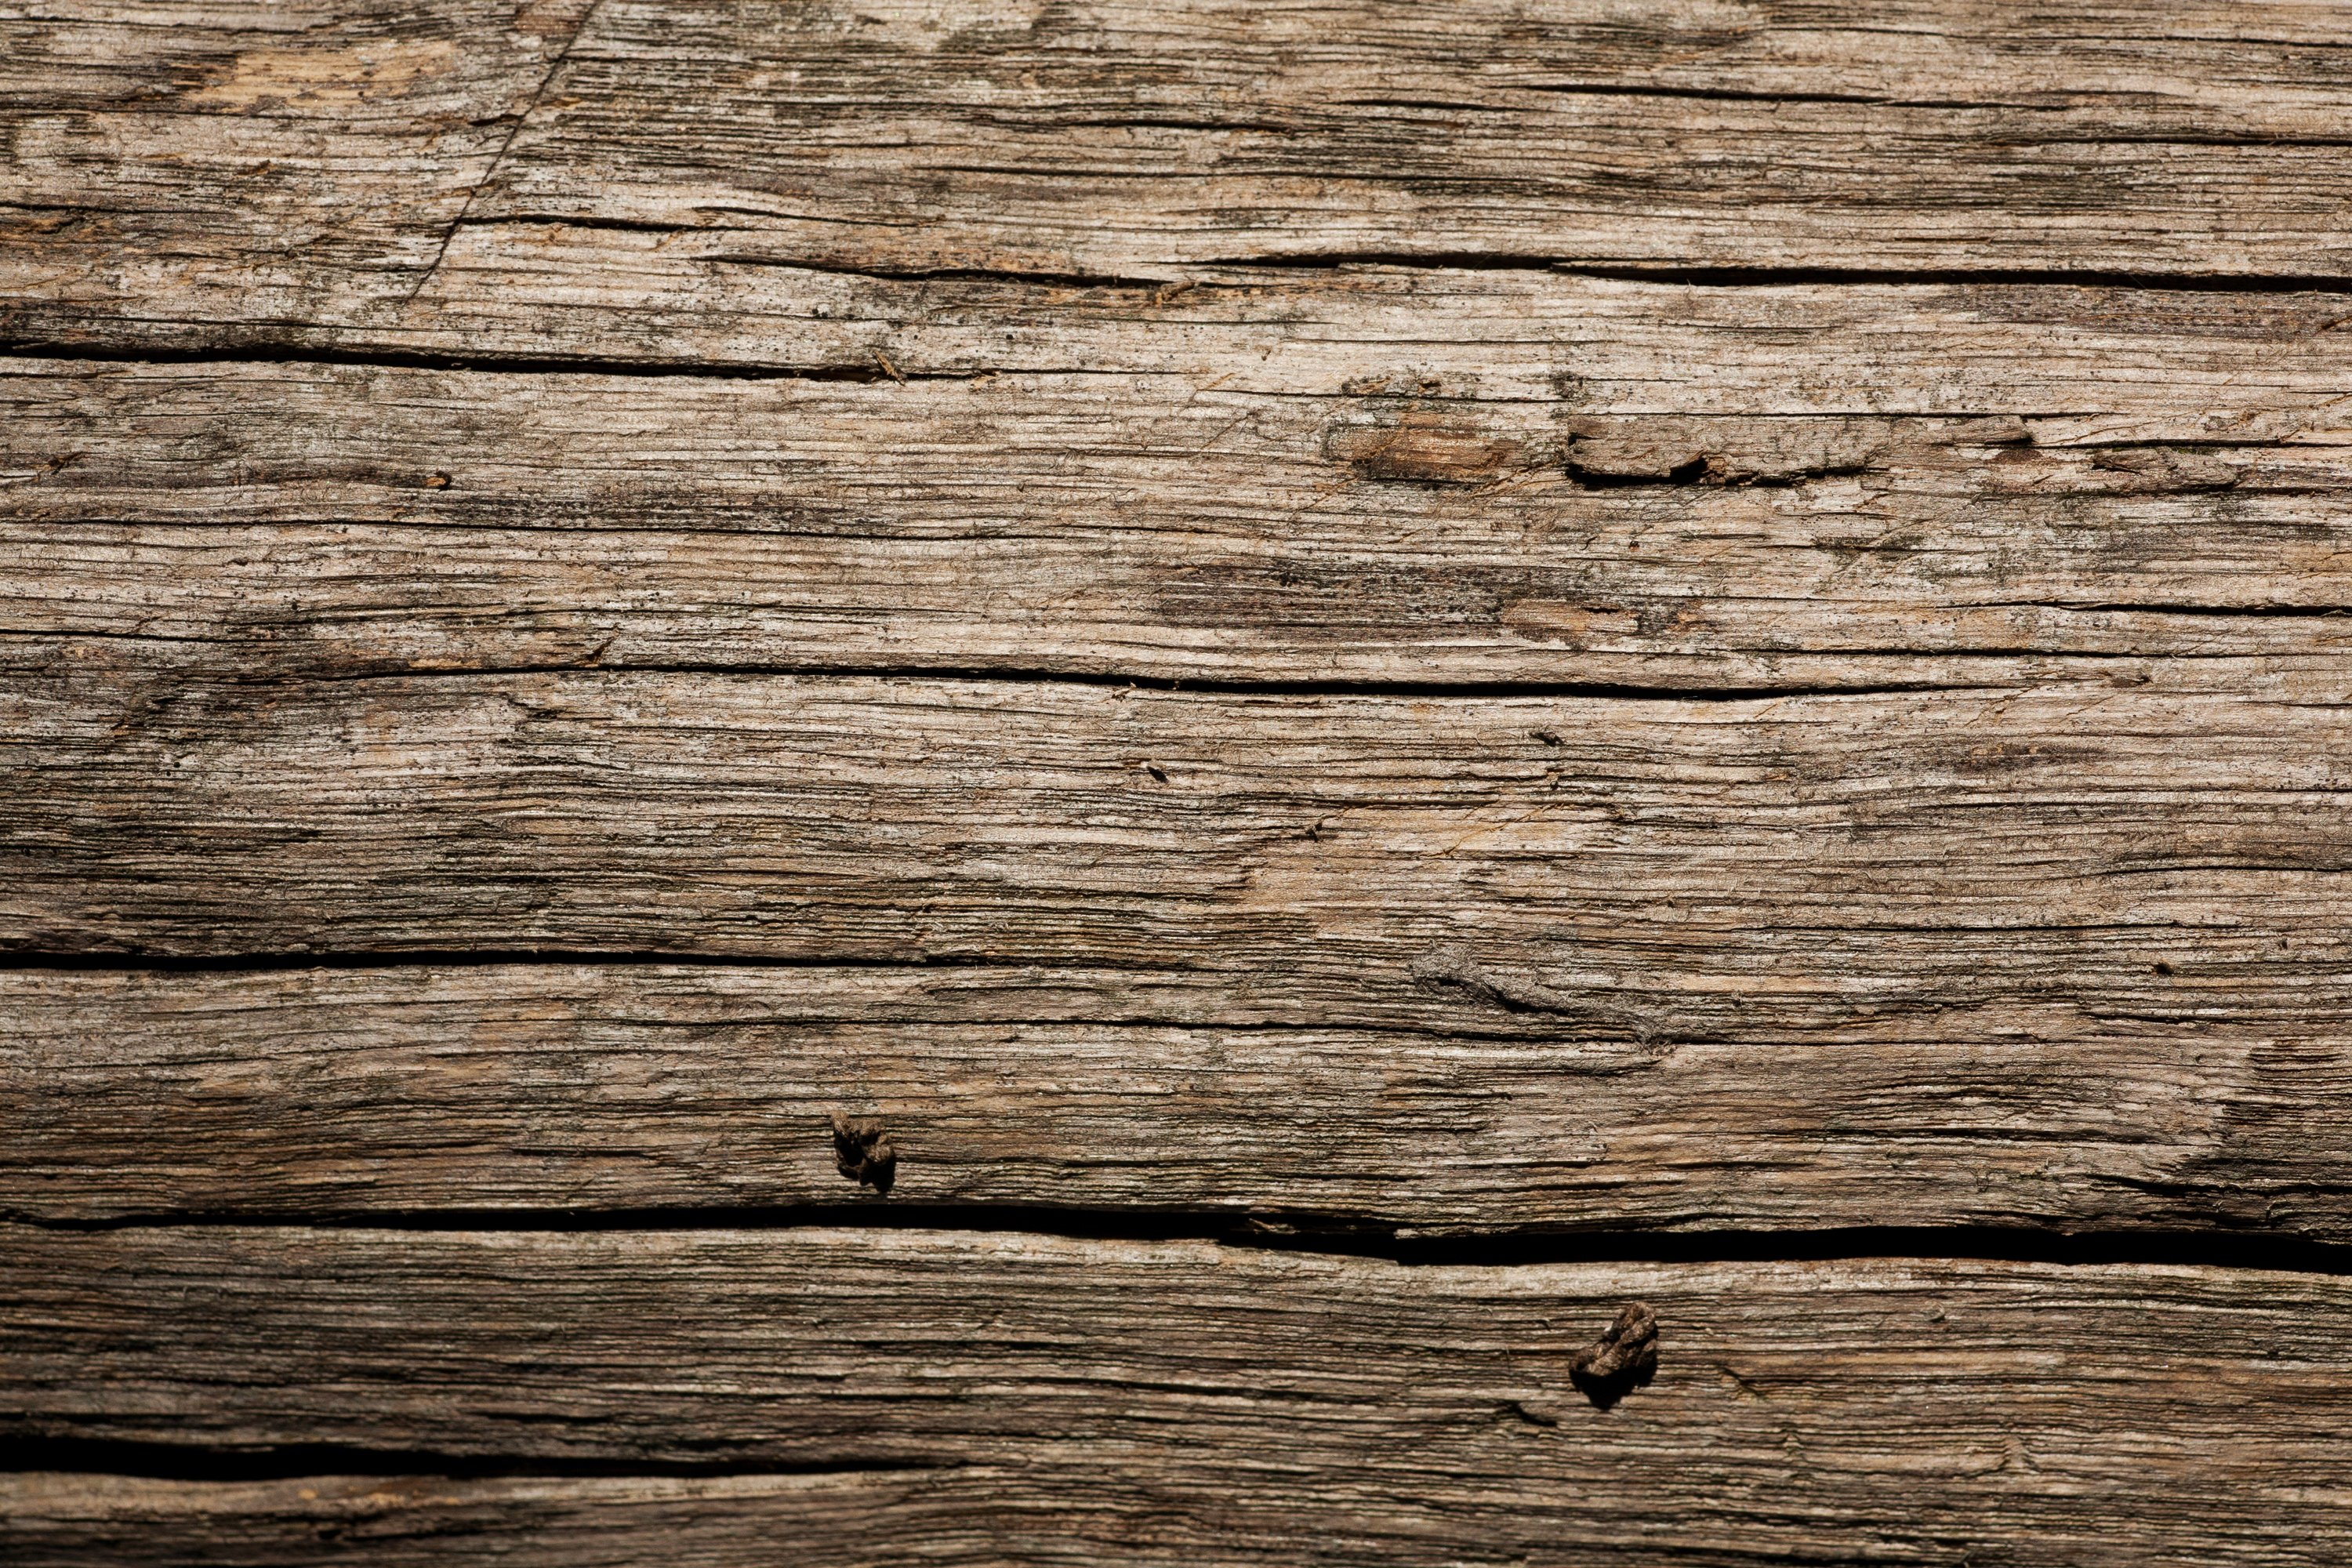 wood wallpaper 4 3000x2000